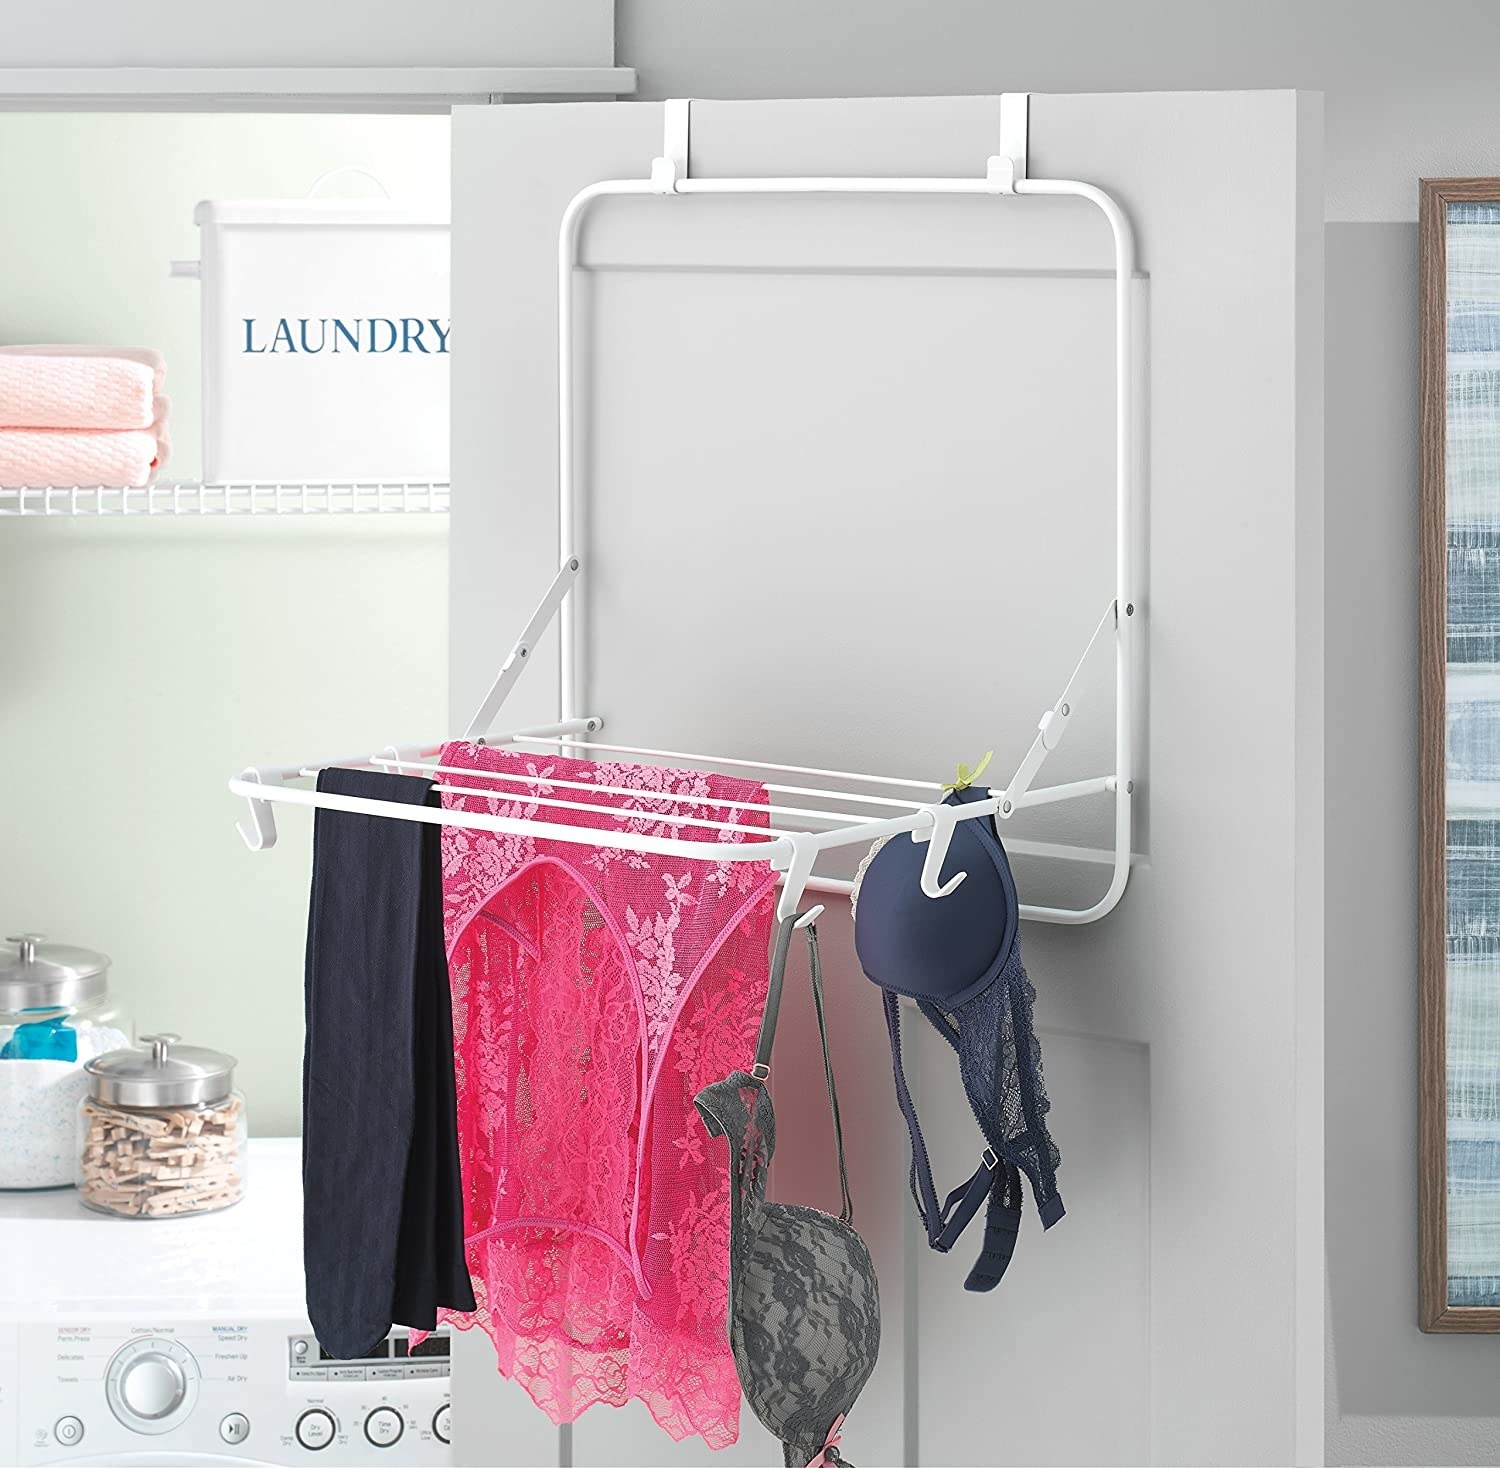 Bras, nighties, and yoga pants hanging from the over-the-door drying rack